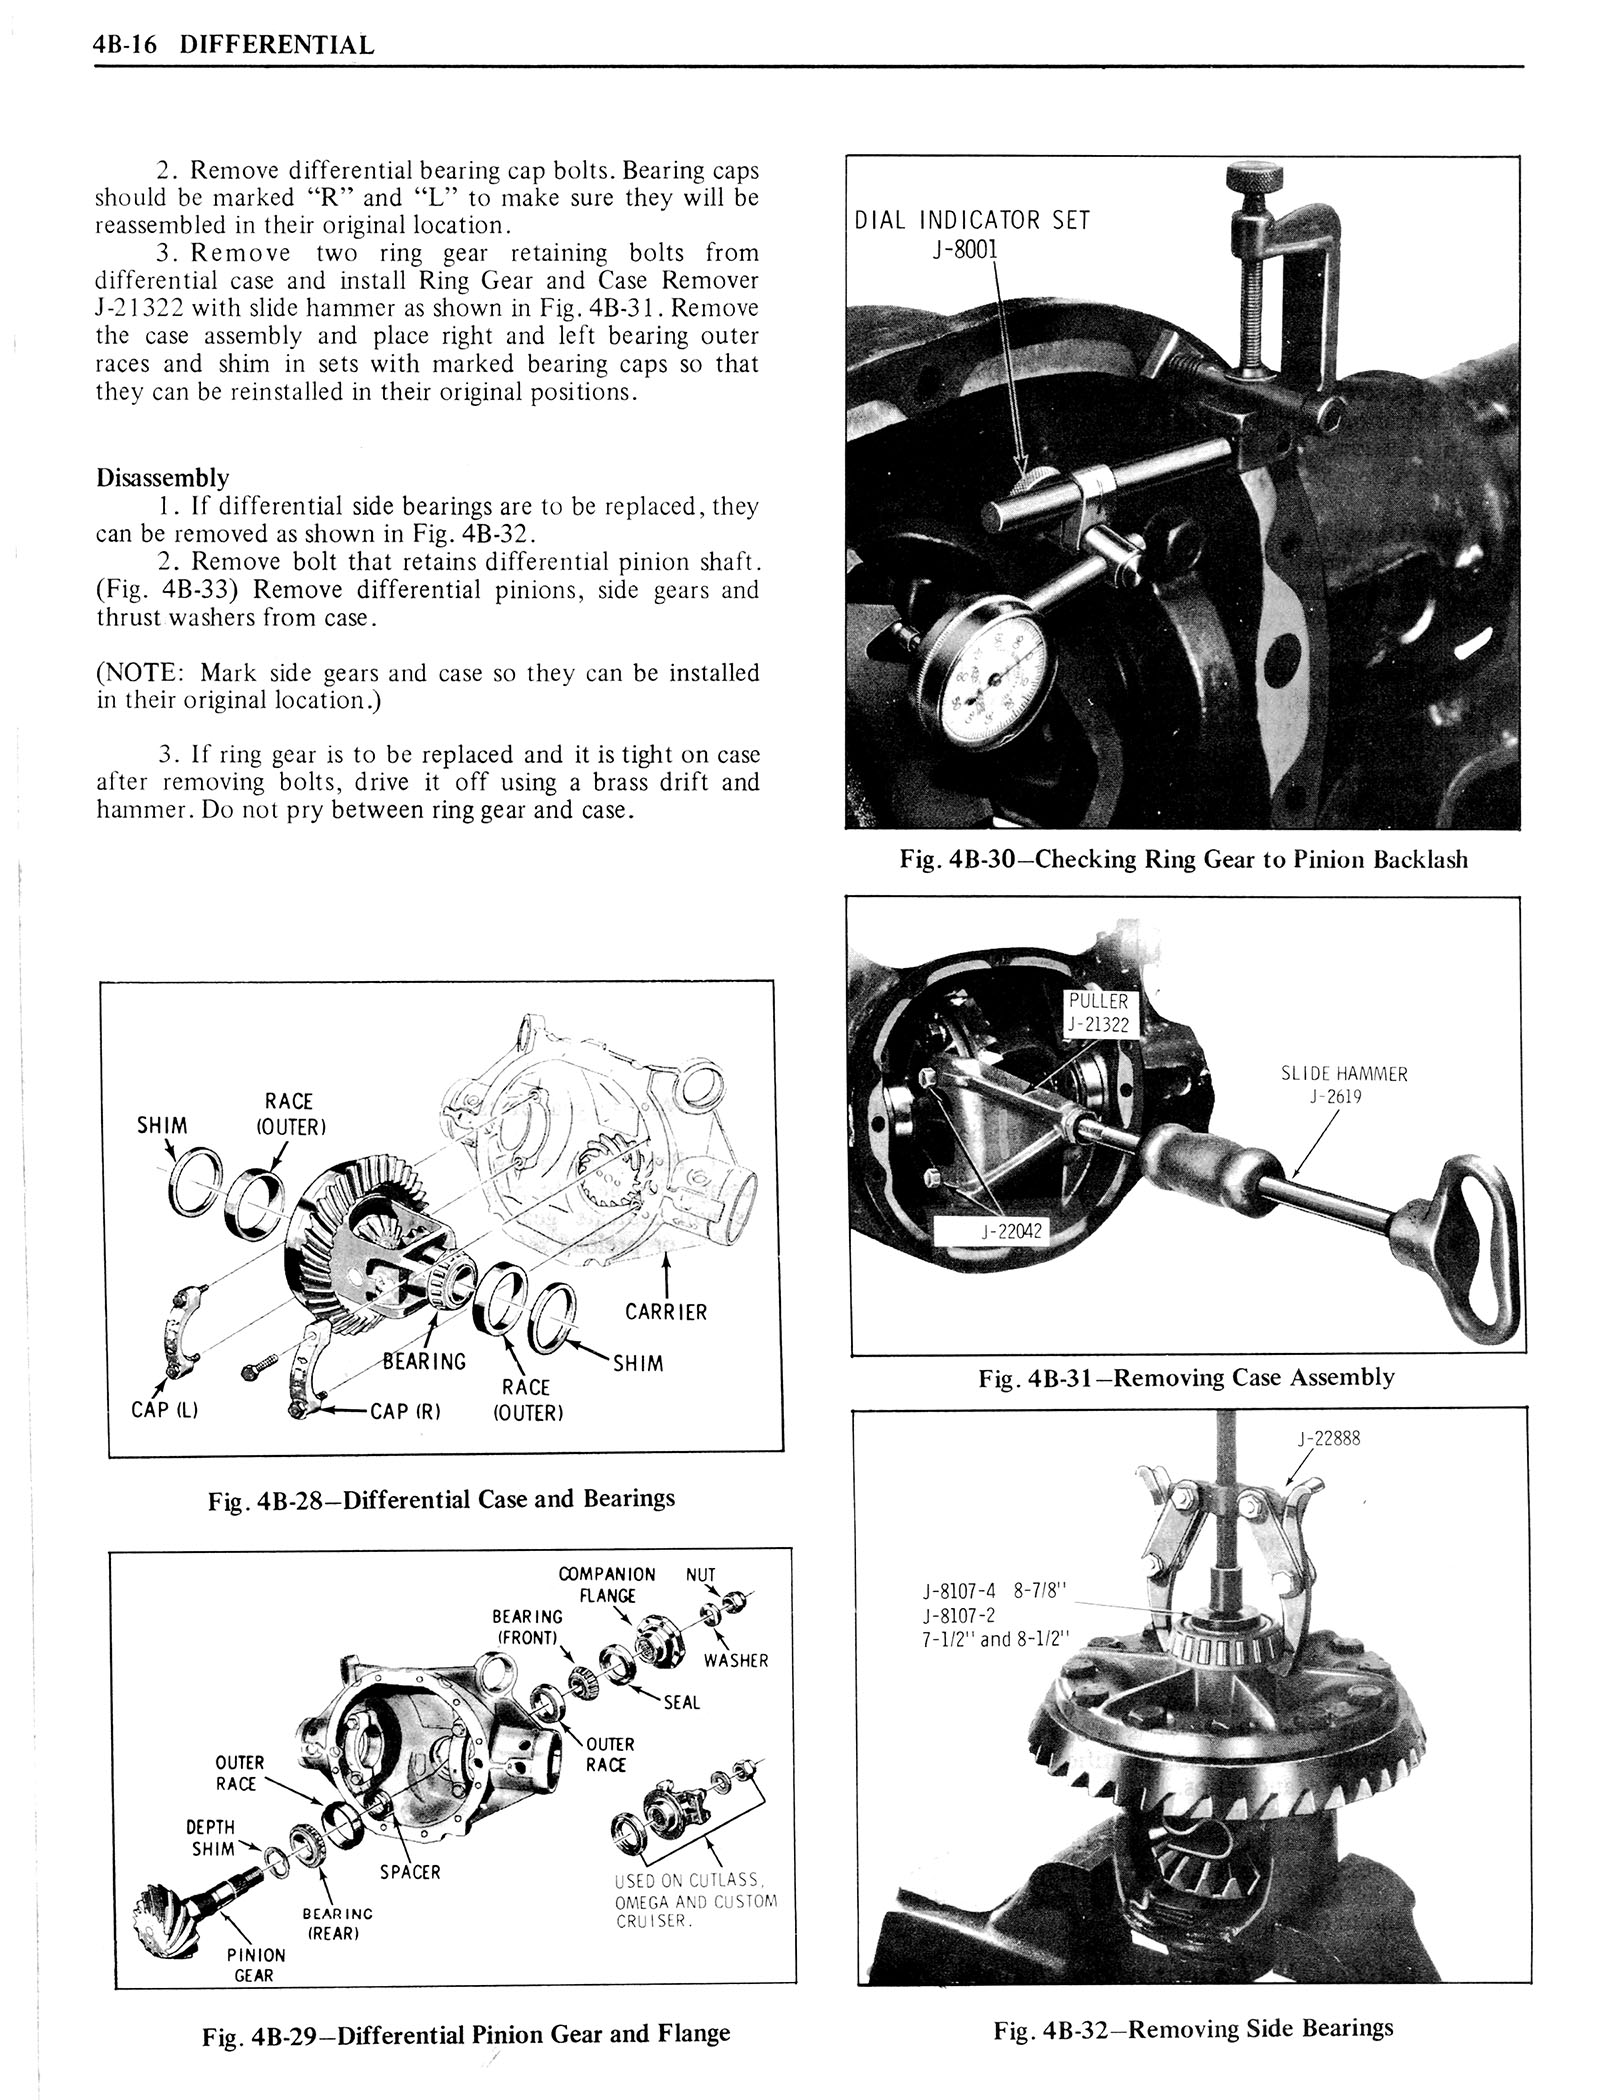 1976 Oldsmobile Service Manual page 302 of 1390